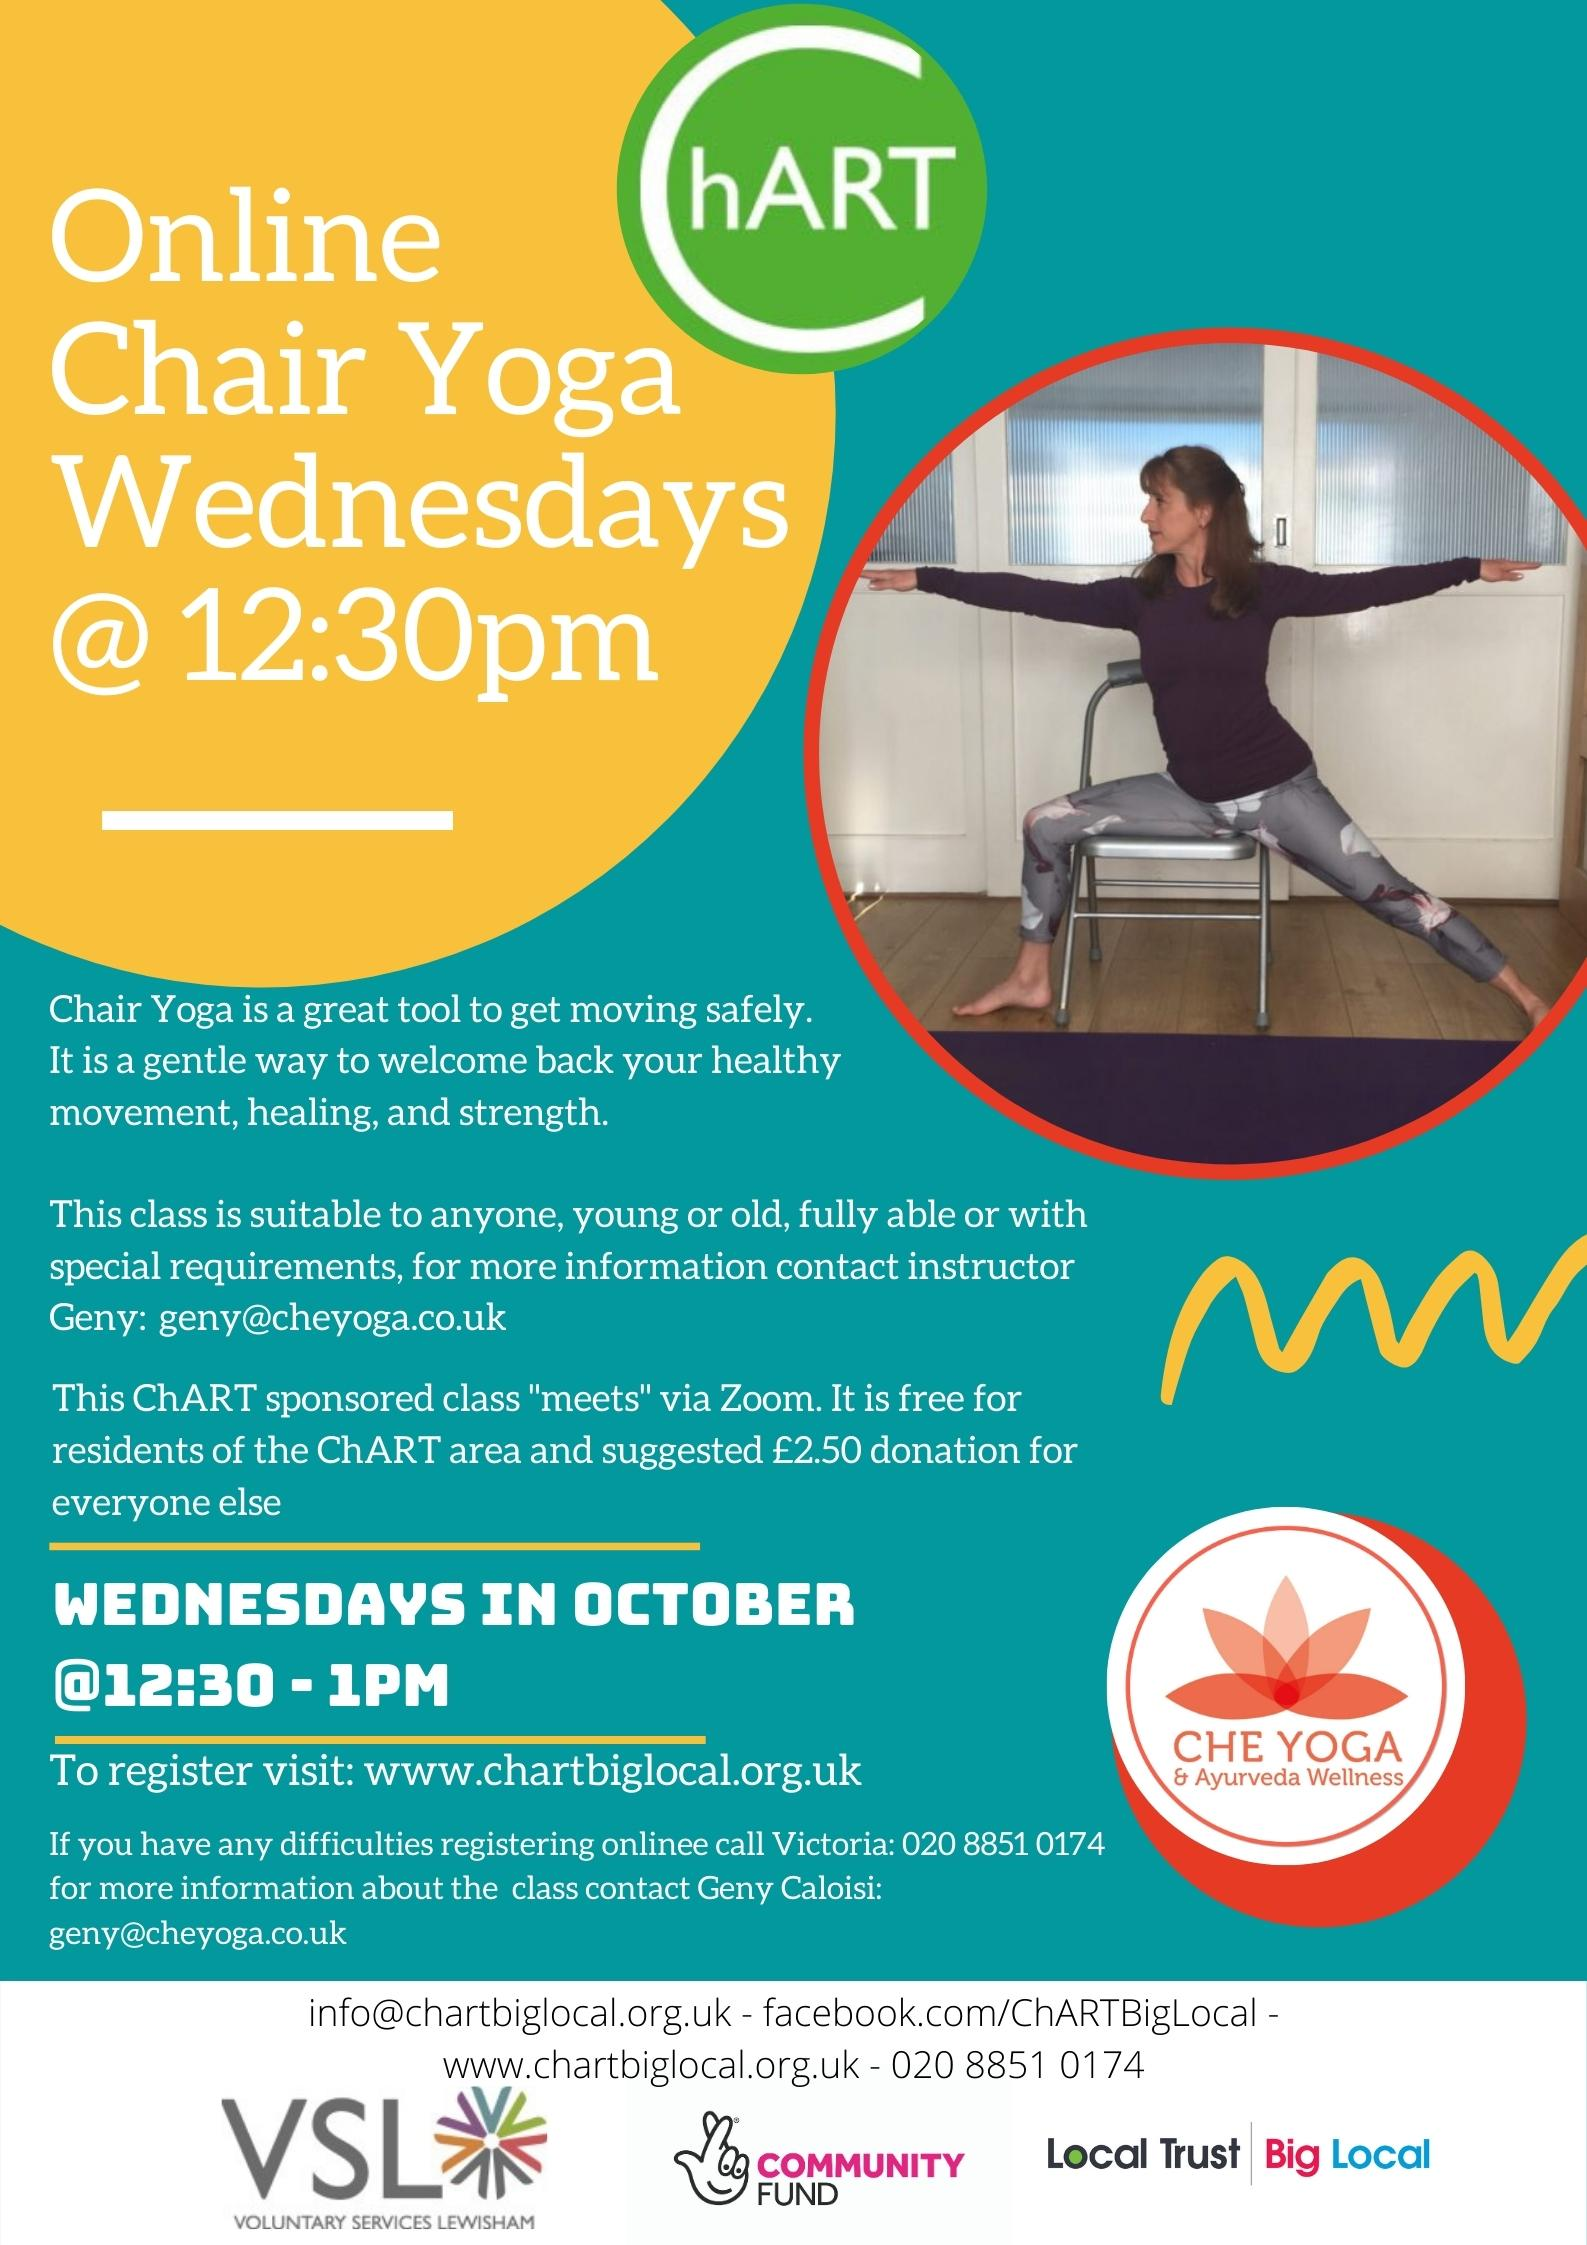 "Poster with Teal background yellow spot with white text ""Online Chair Yoga Wednesdays at 12:30pm"". Picture of lady doing a yoga stretch on a chair in a circle."